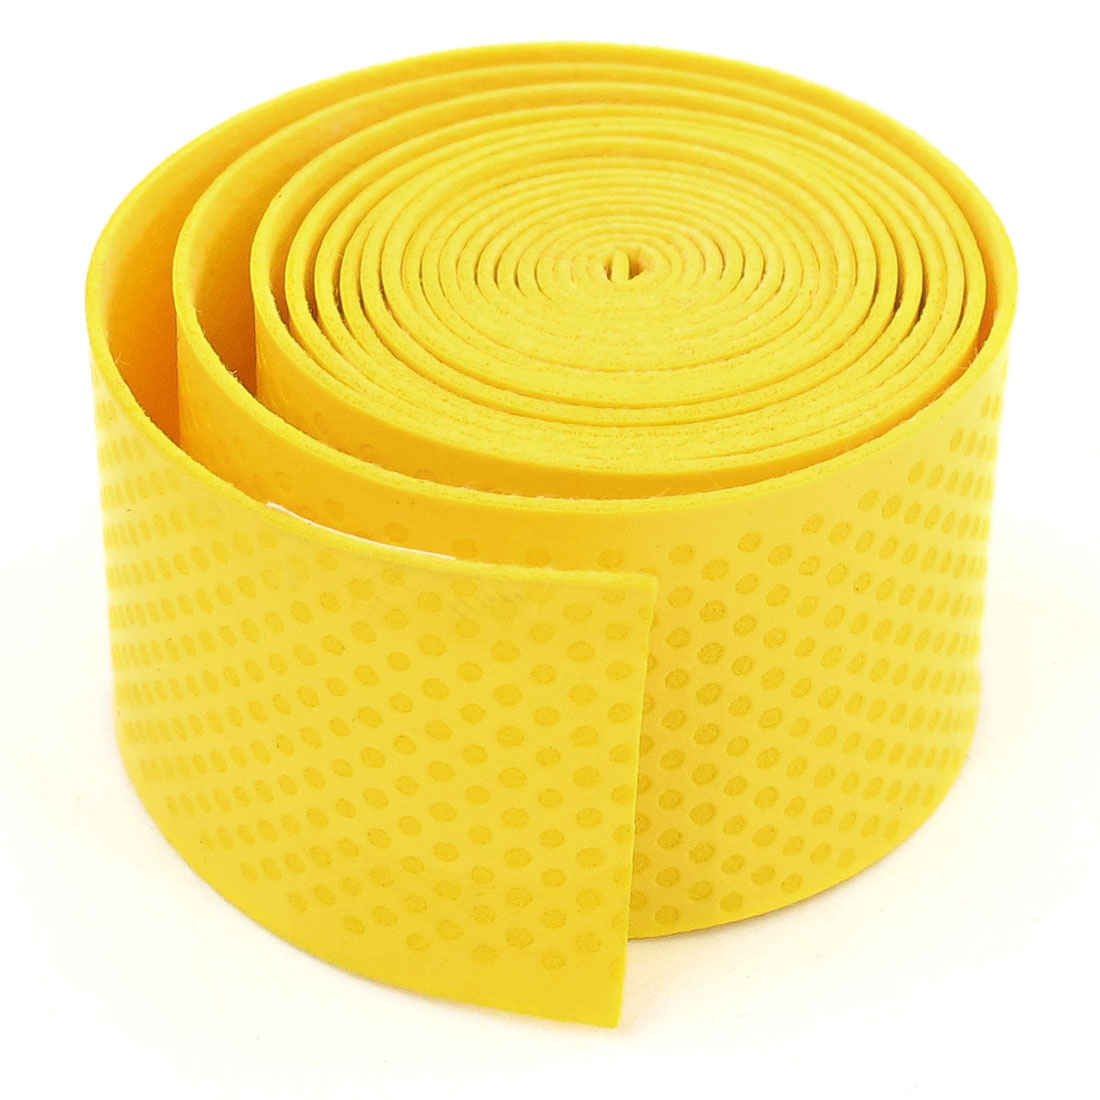 Fish Rod Handle Shock Accessories Non-slip Absorb Sweat Band Tape Yellow